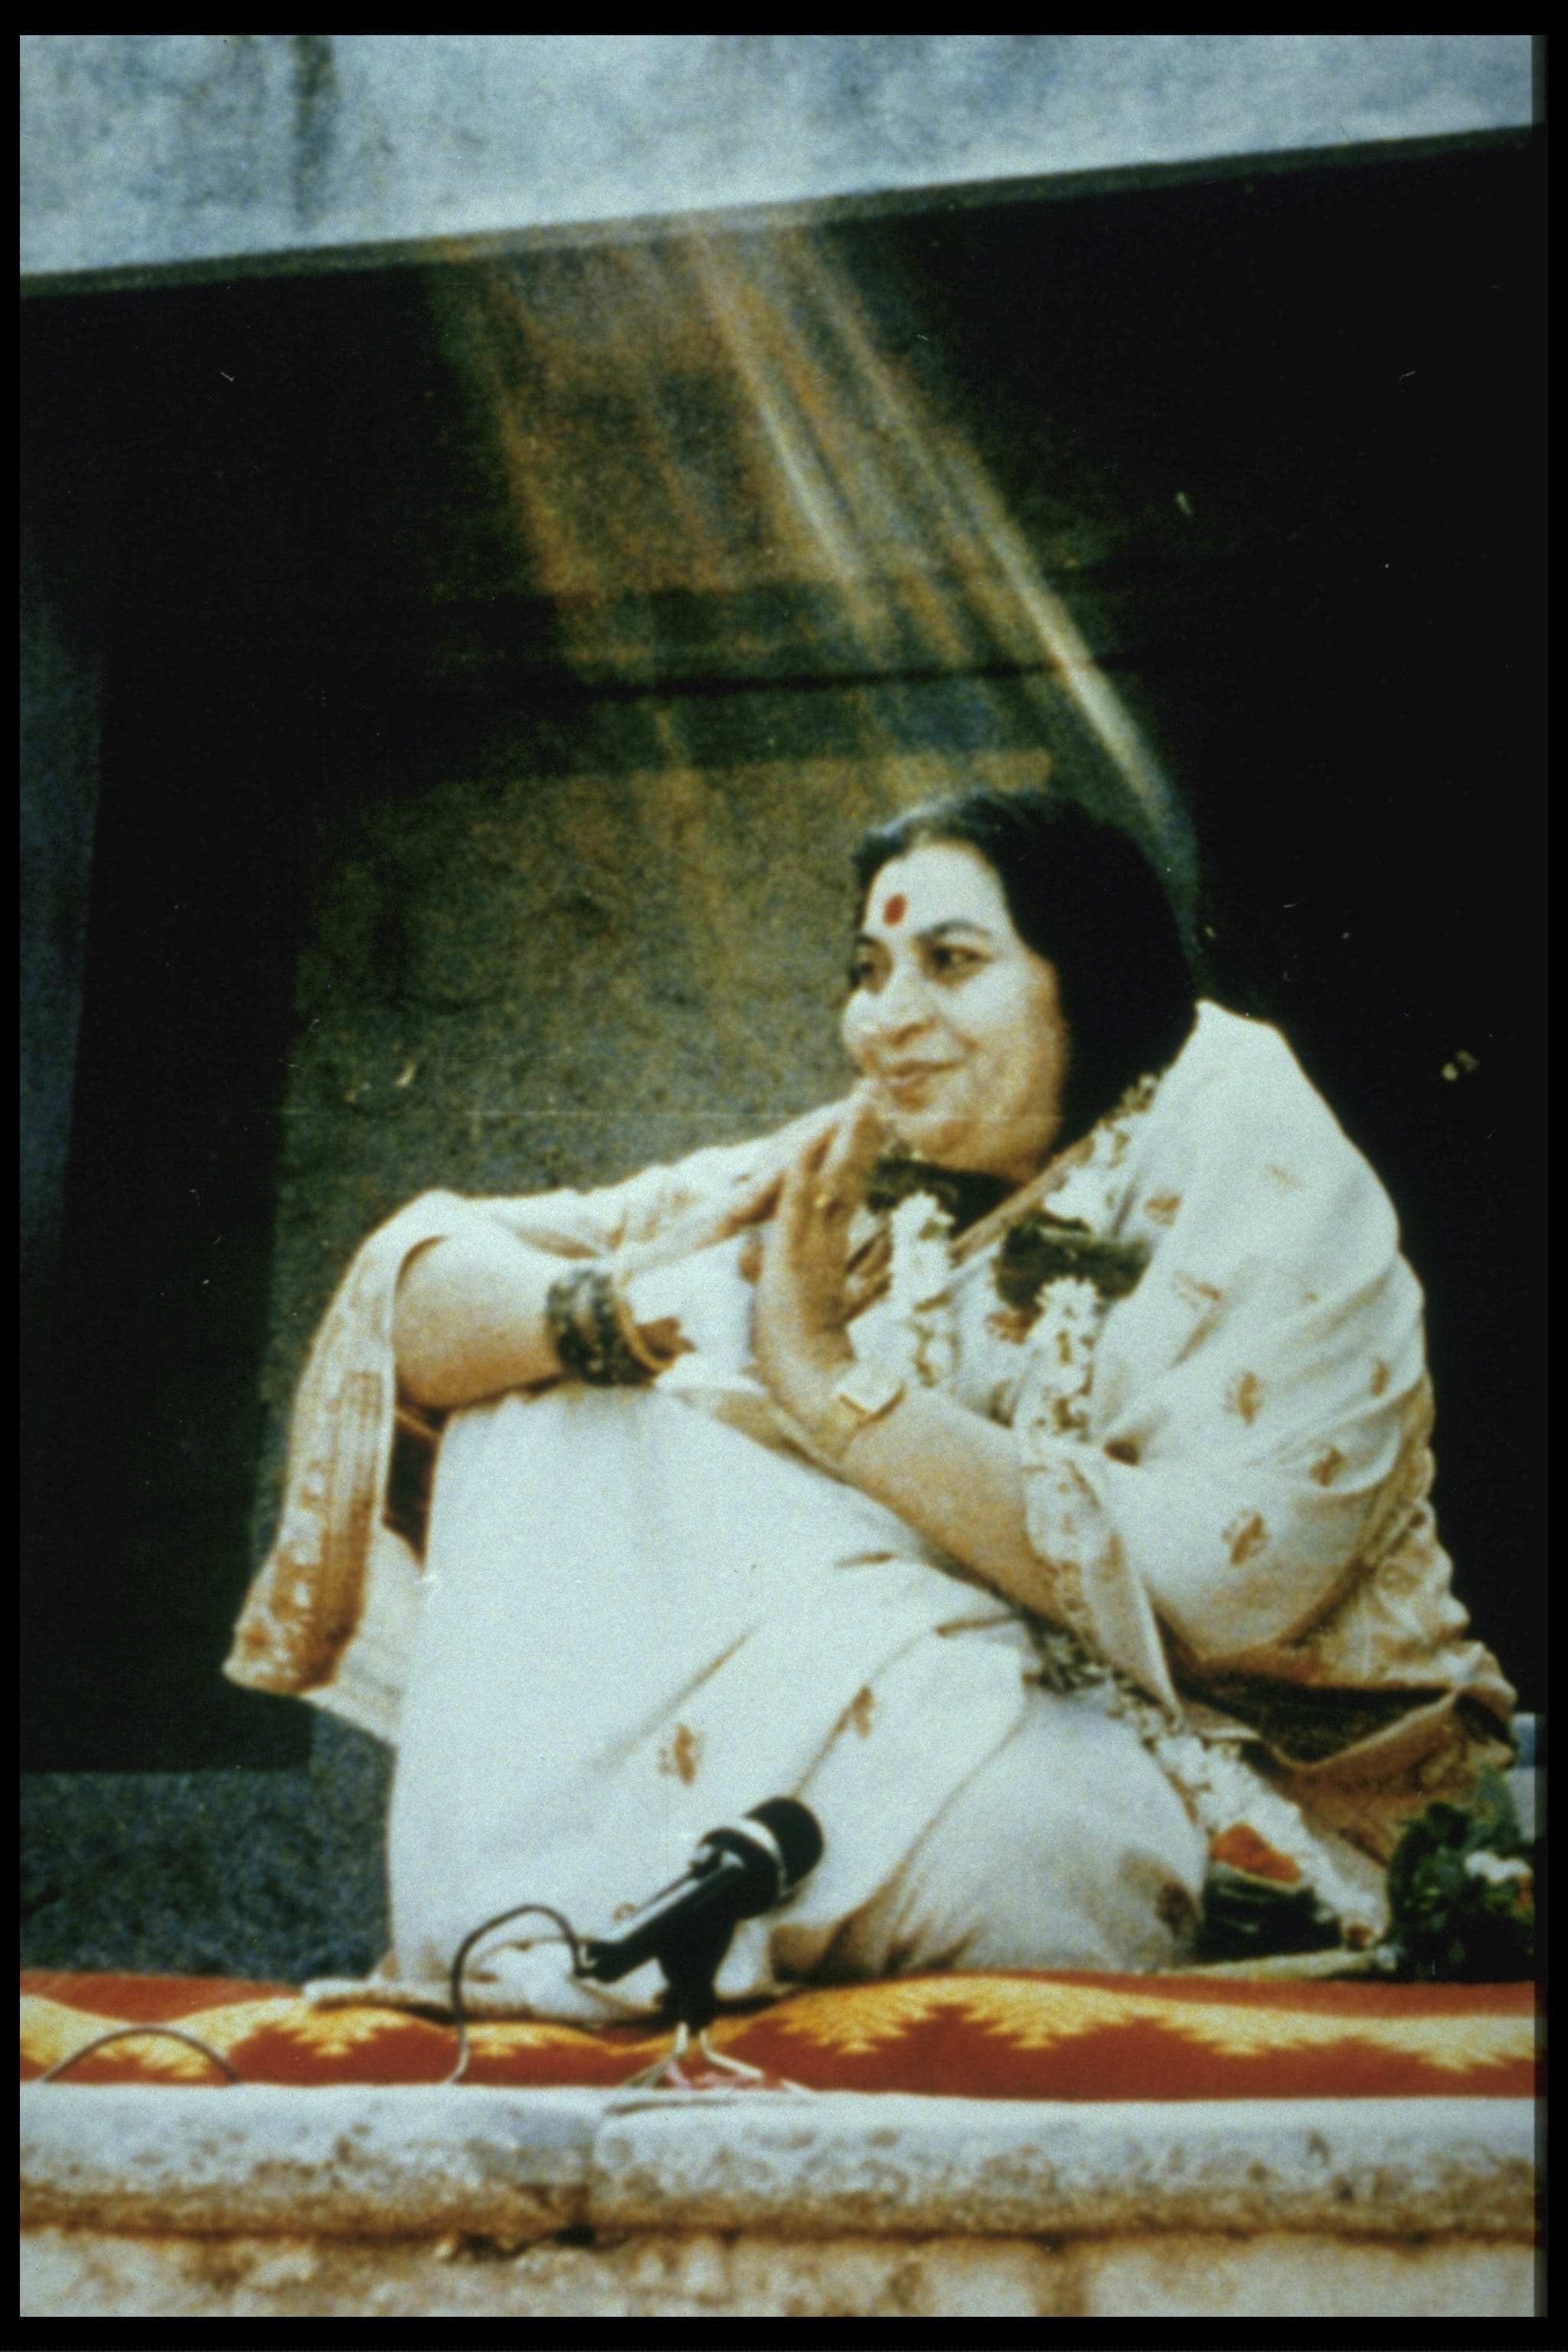 Shri Mataji -in A Rain of vibrations- old photo from public program in India -1980